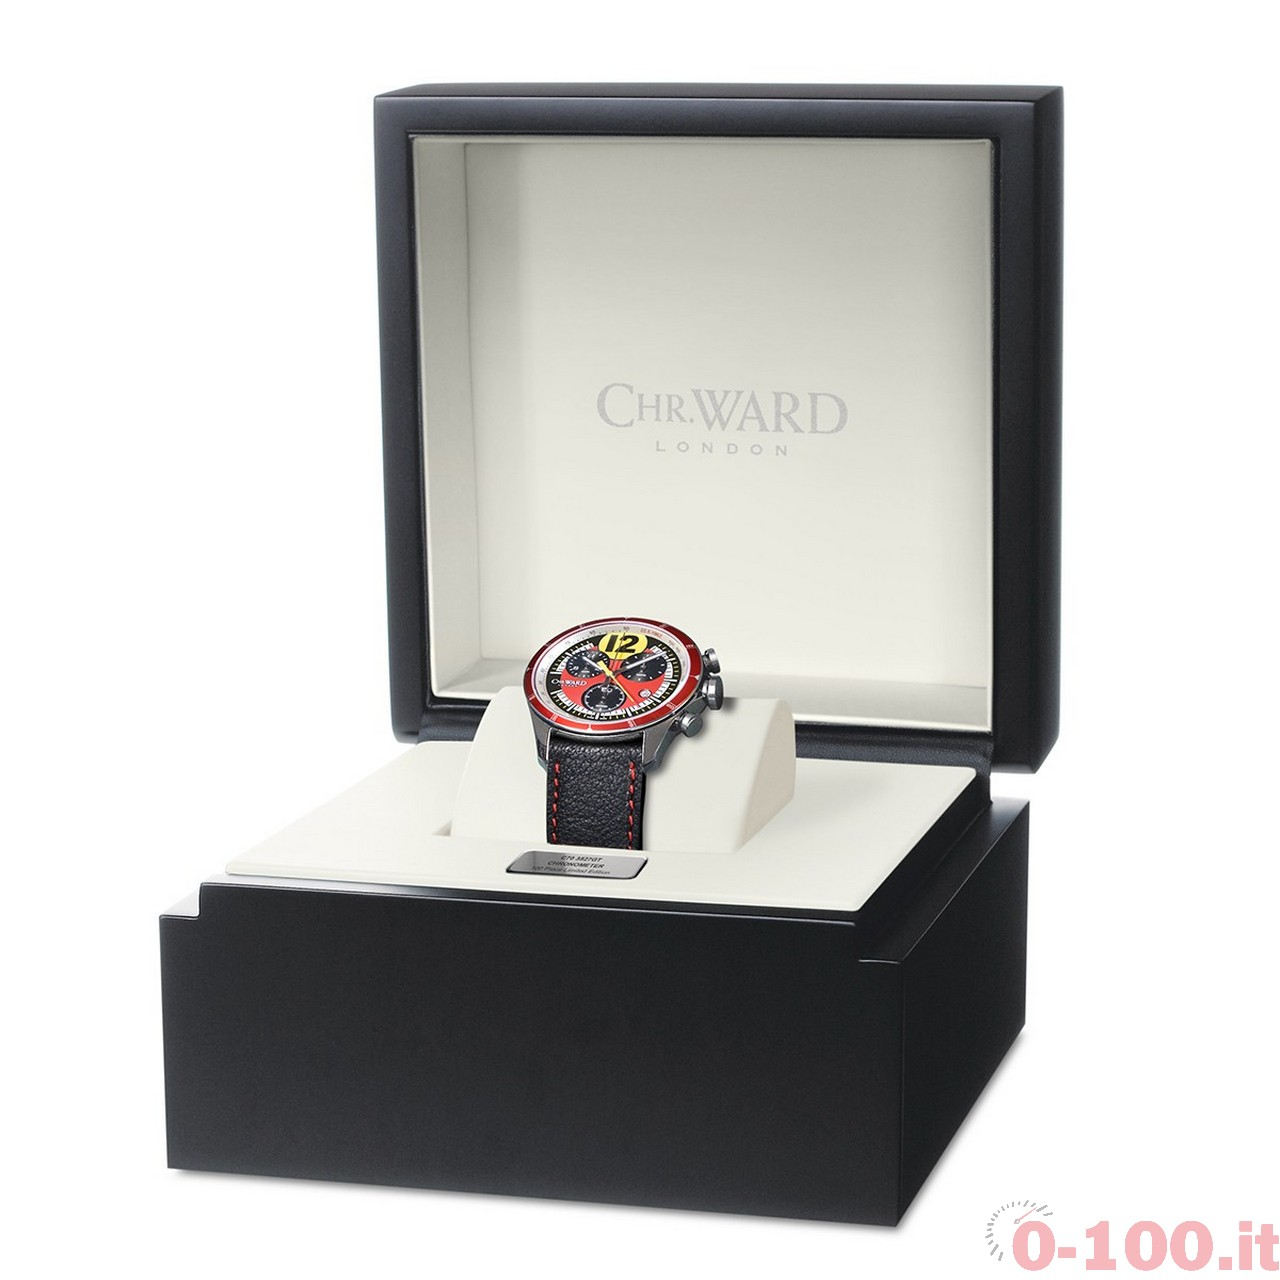 christopher-ward-tmb-art-metal-c70-3527gt-250-gto-chronometer-limited-edition_0-100_5